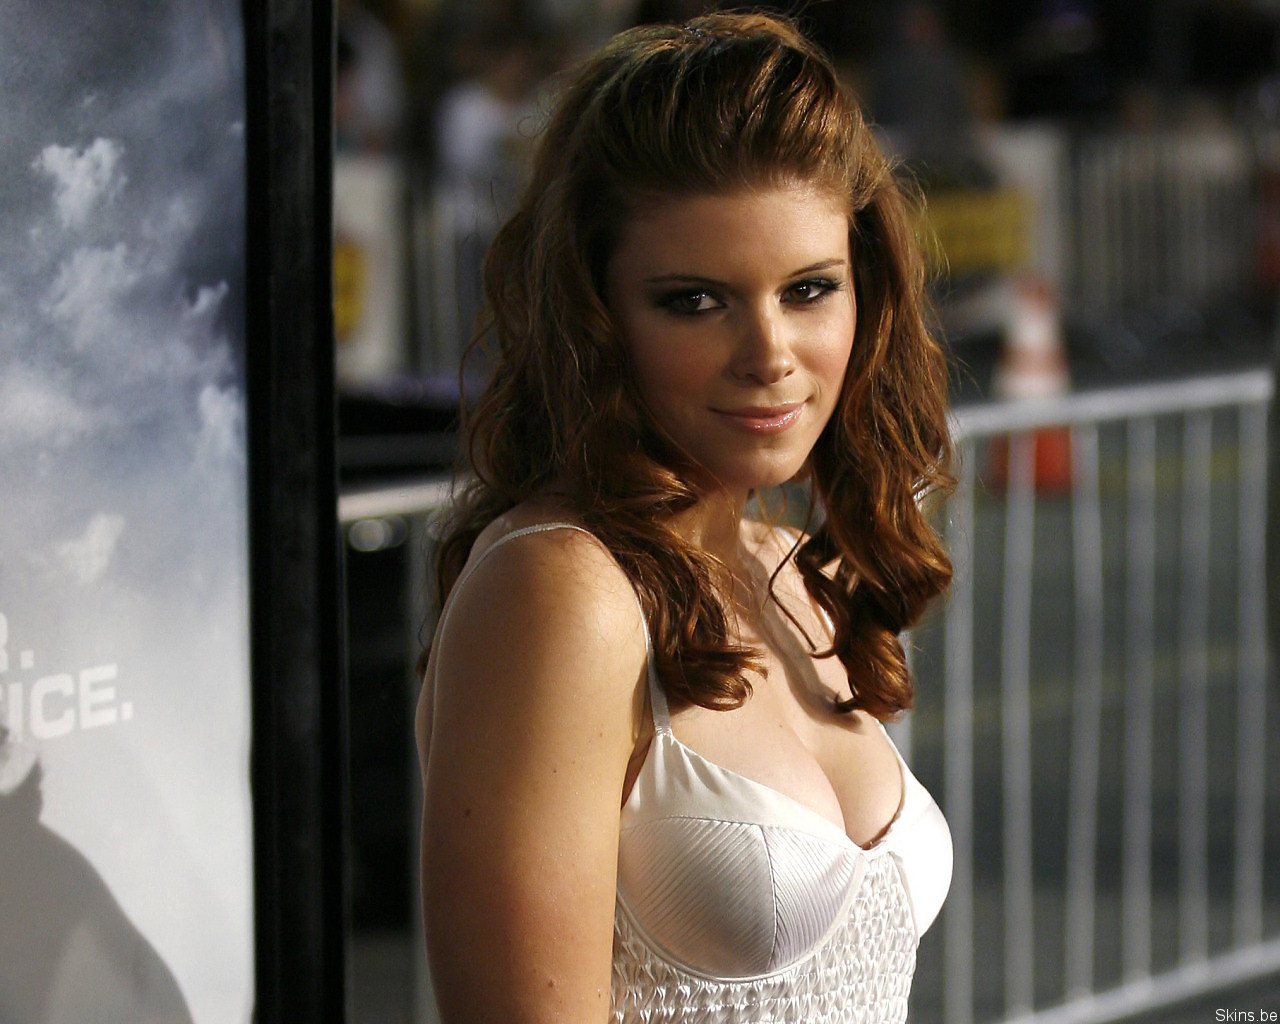 Mara: Celebrity Pictures: Kate Mara